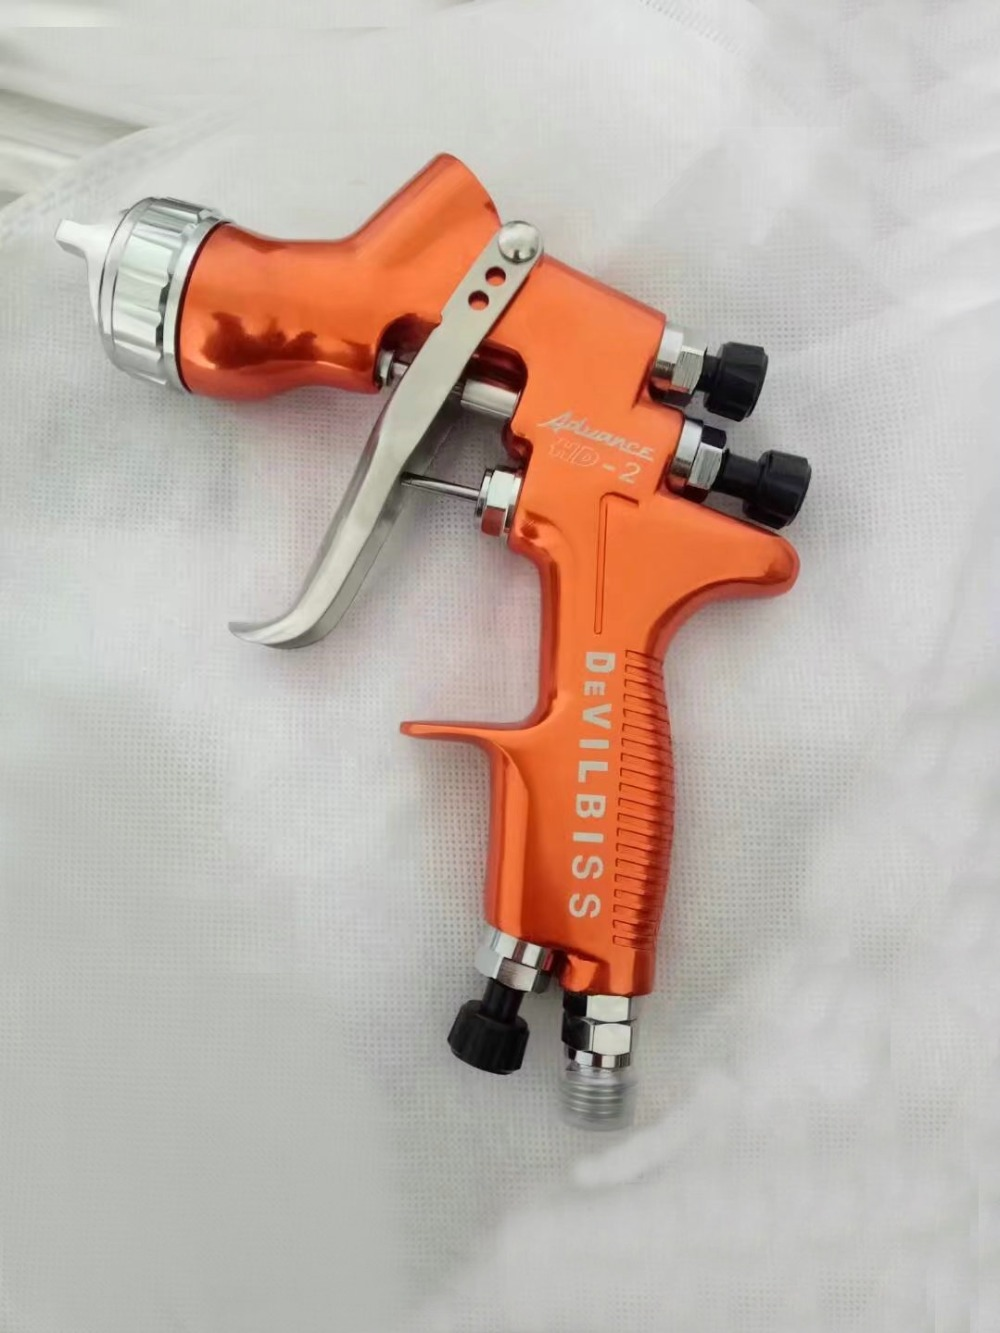 HVLP Devilbiss Spray Gun Gravity Feed for all Auto Paint ,Topcoat and Touch-Up with 600cc Plastic Paint Cup hvlp spray gun gravity feed car paint spray gun 1 3 noozle airbrush devilbiss car painting tools